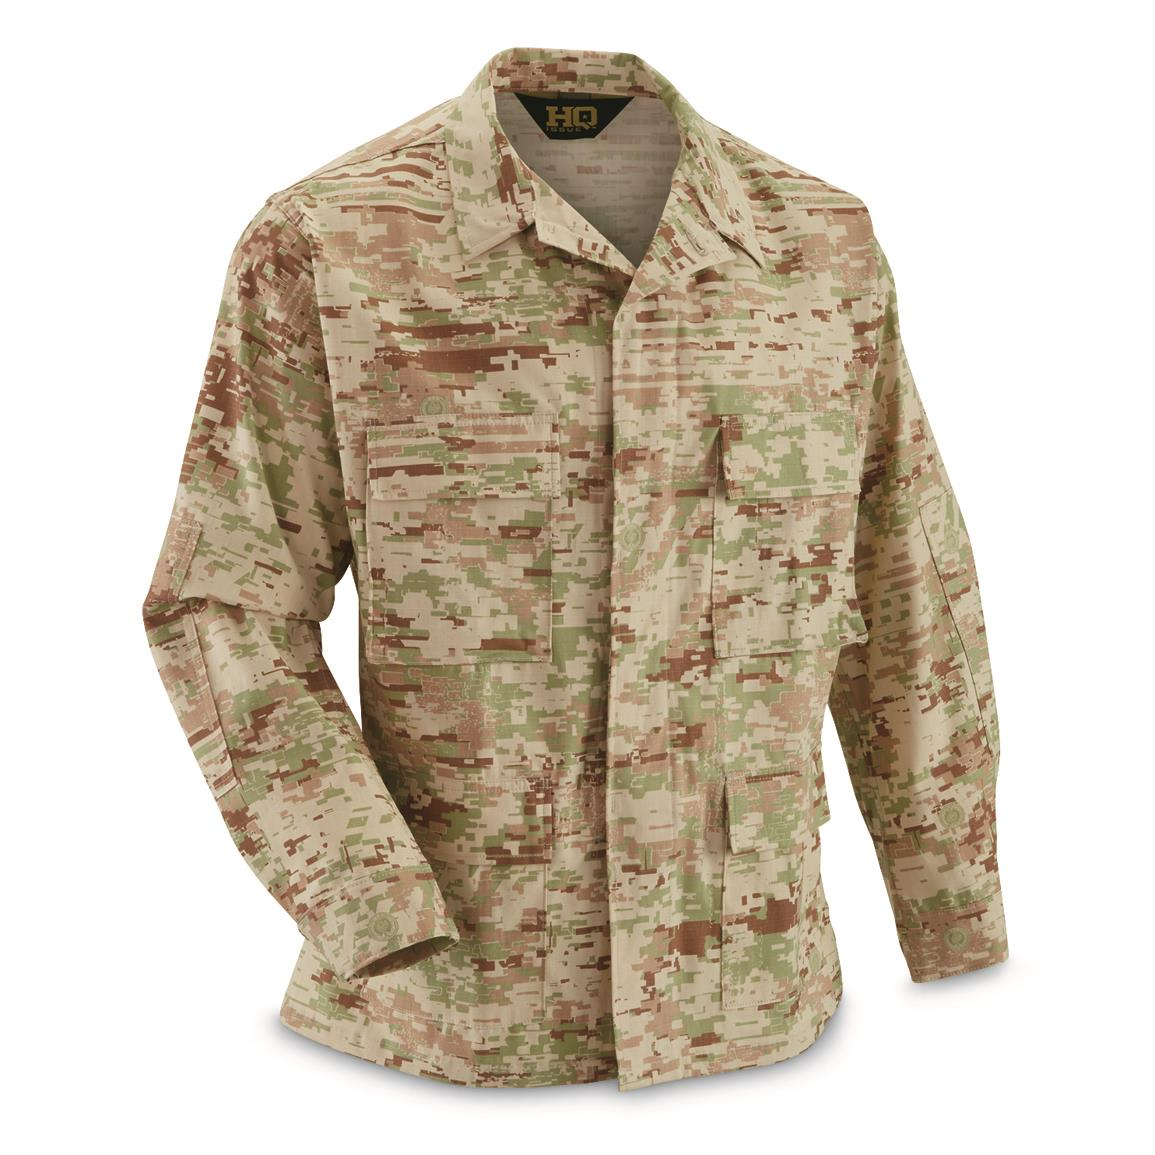 HQ ISSUE Military-style Cotton Ripstop BDU Jacket, Royal Guard Camo